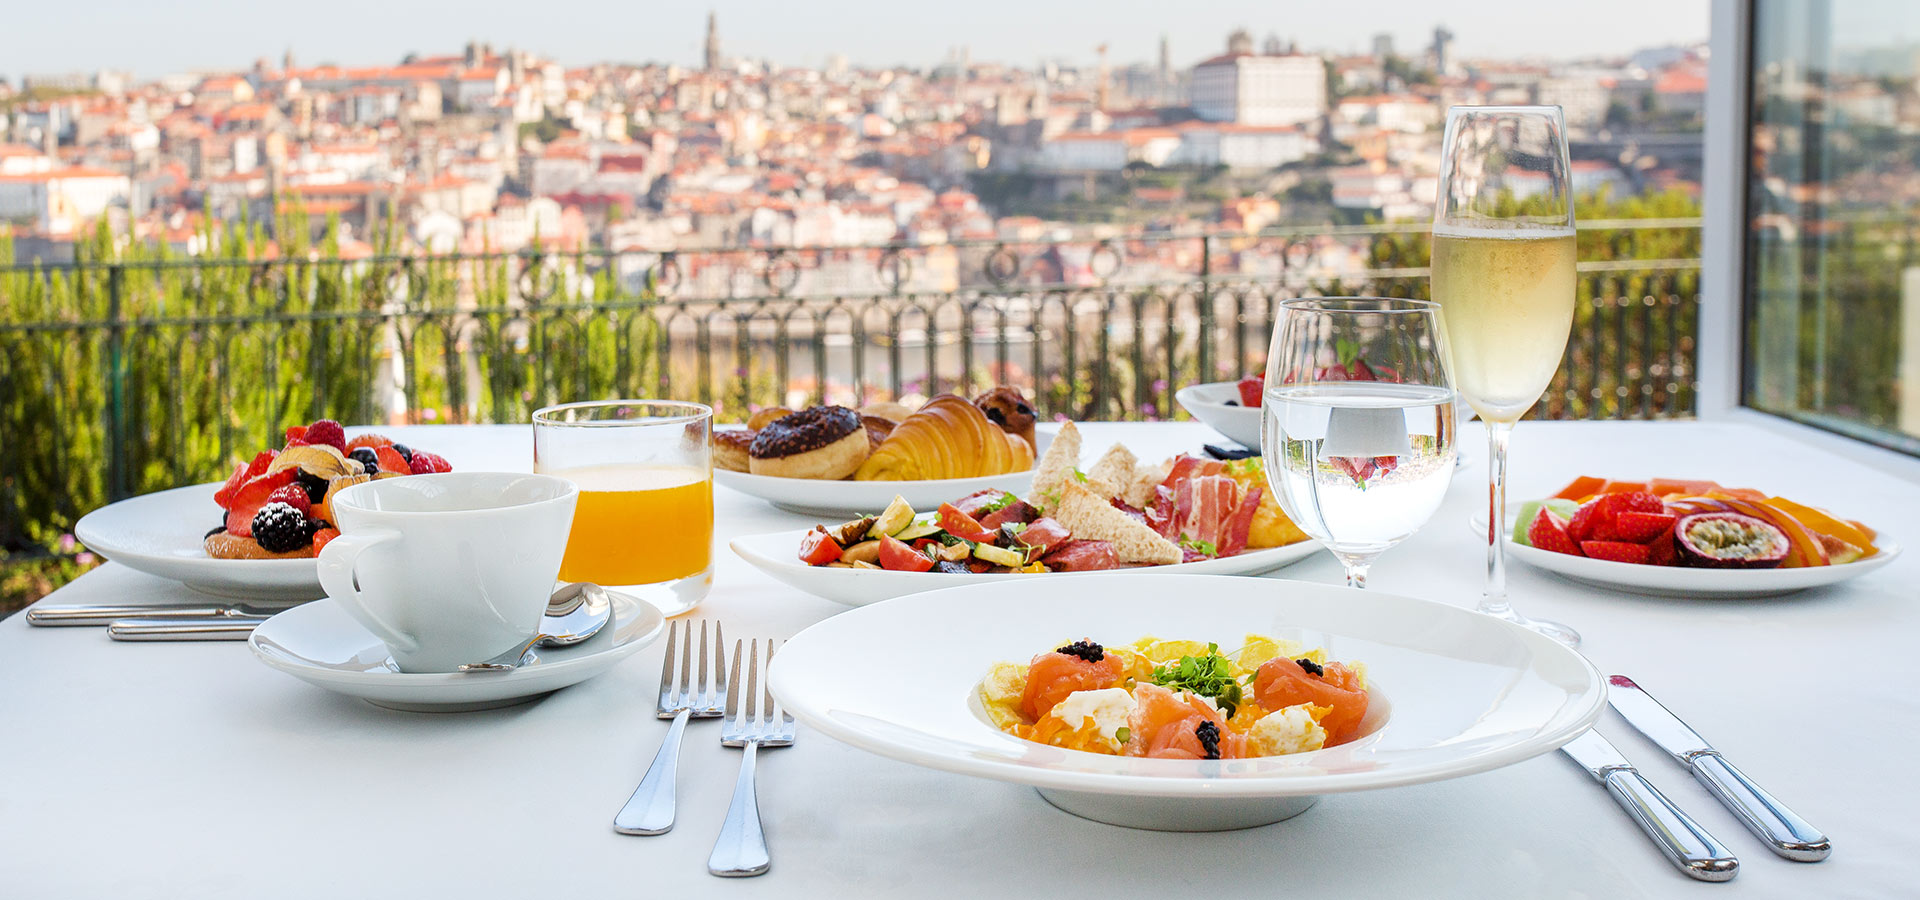 BREAKFAST OVERLOOKING PORTO